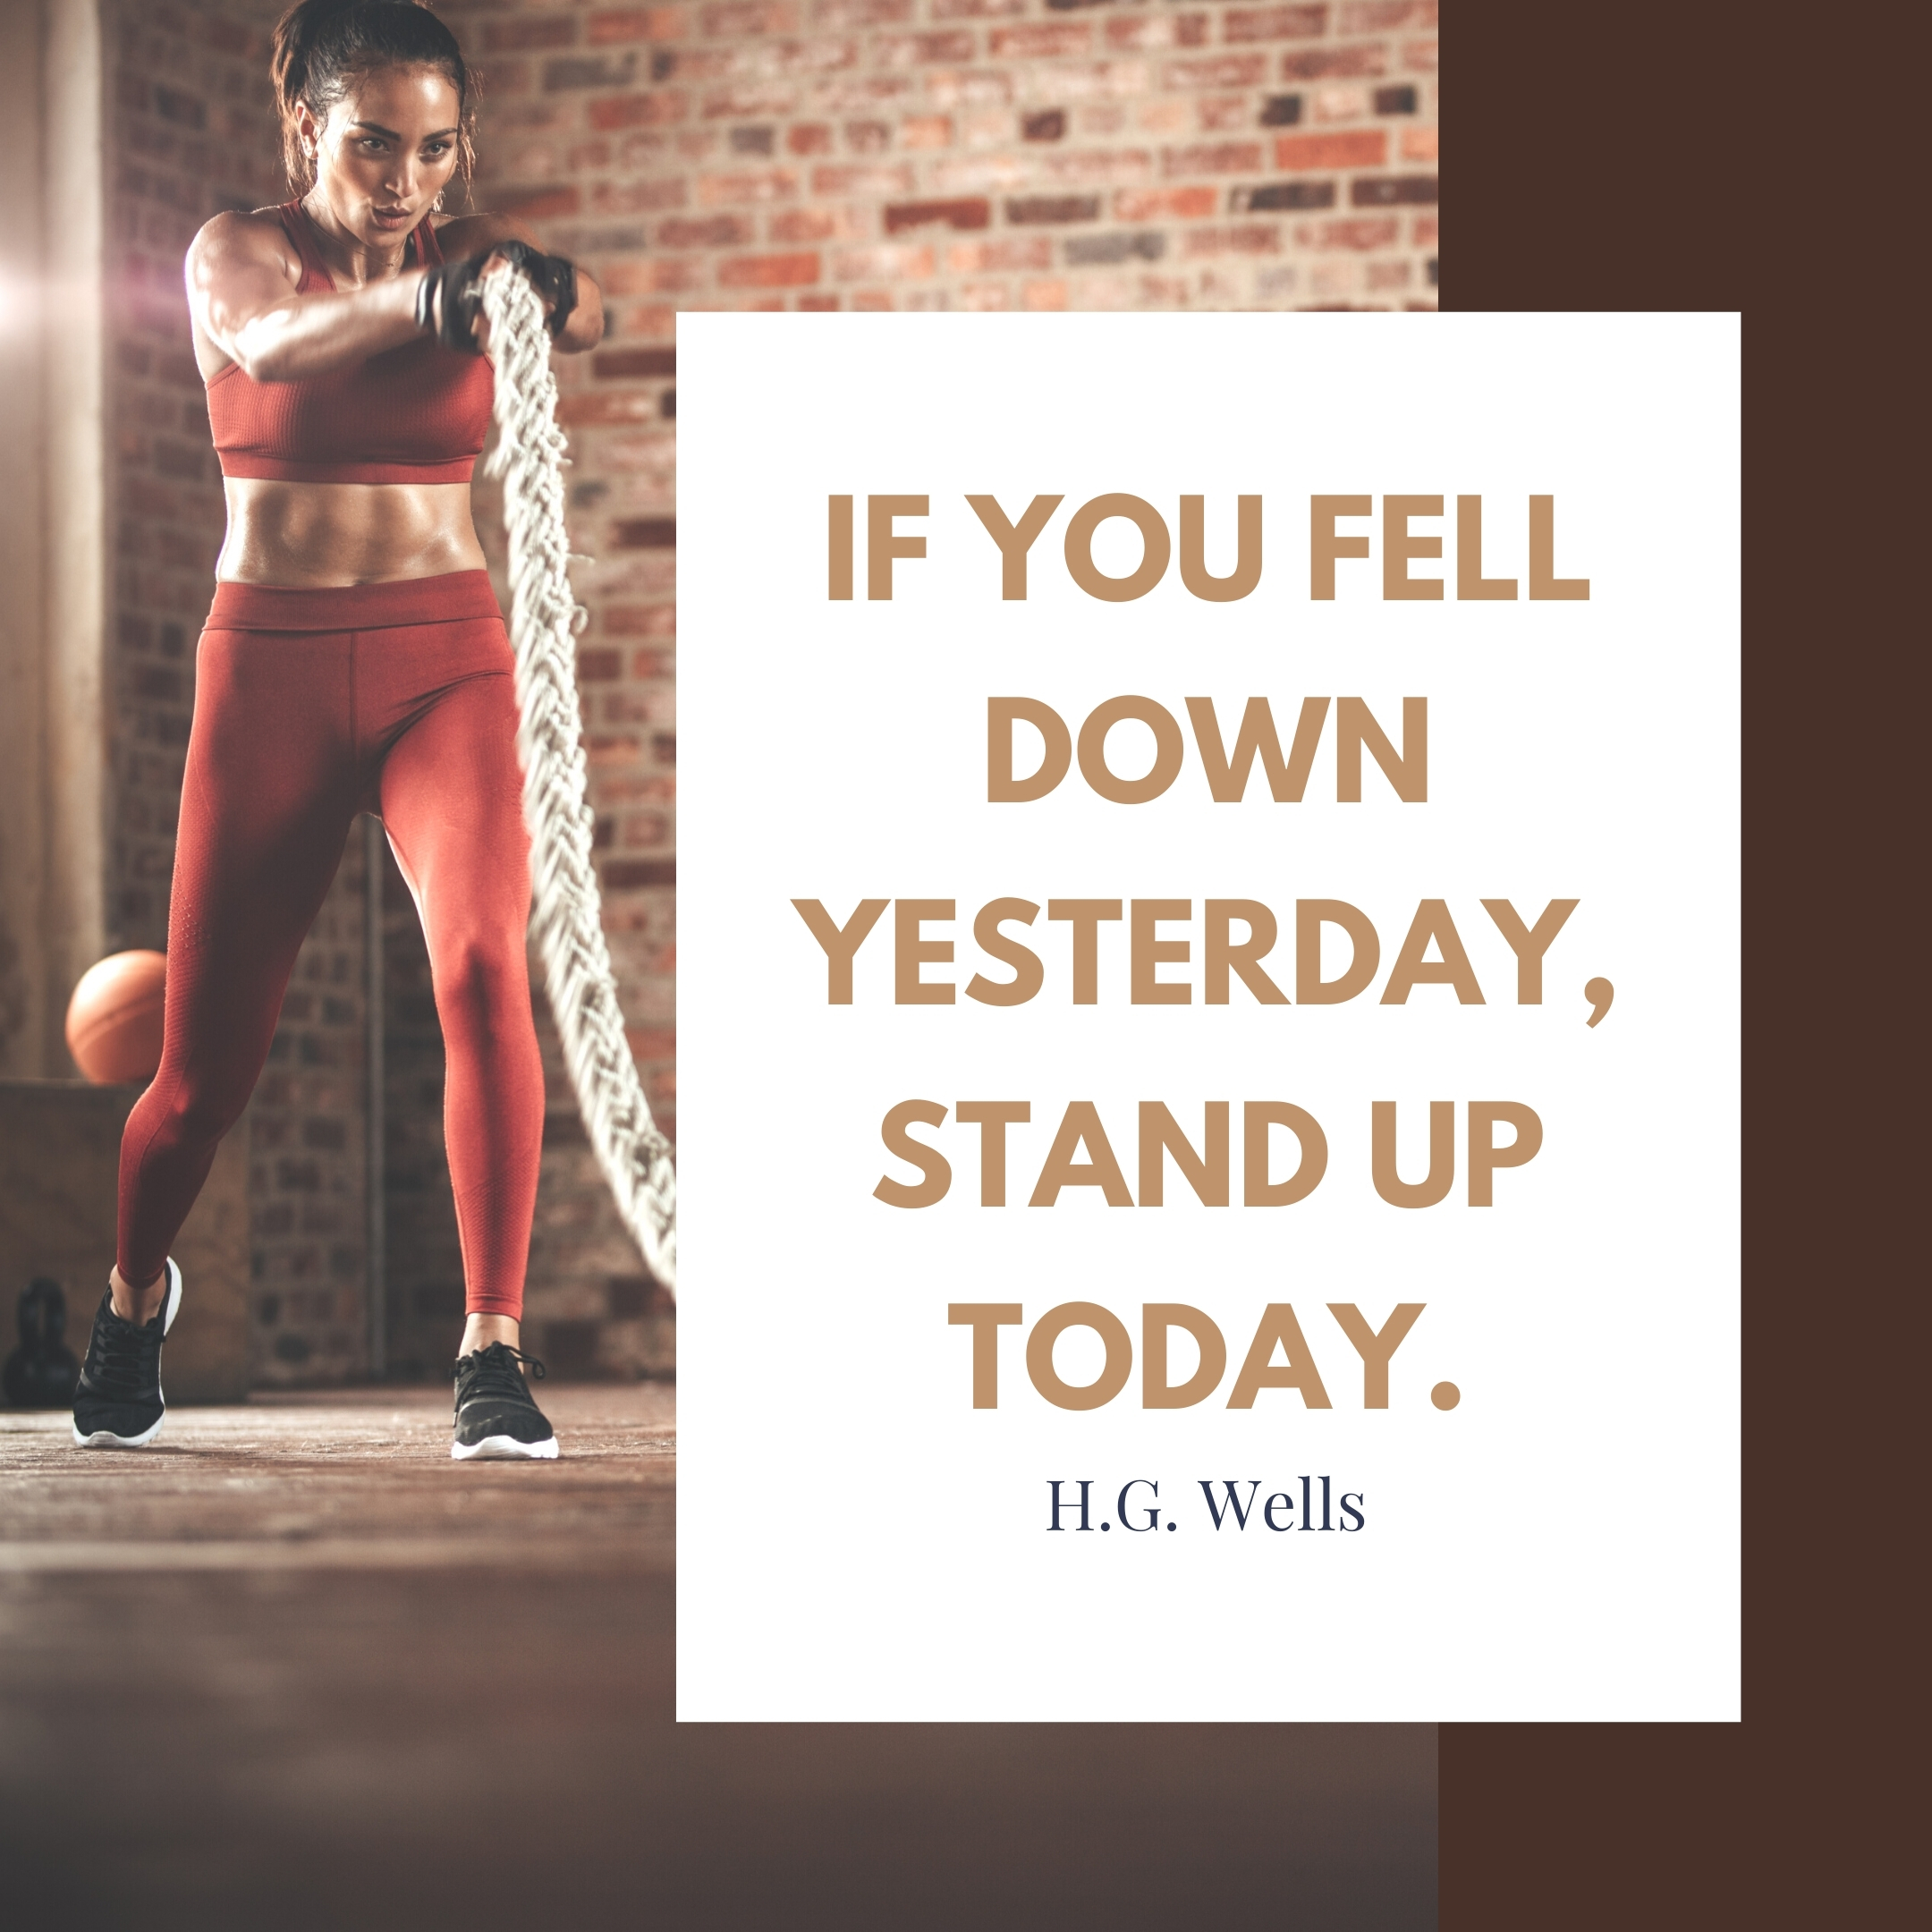 h g wells quote | daily motivation